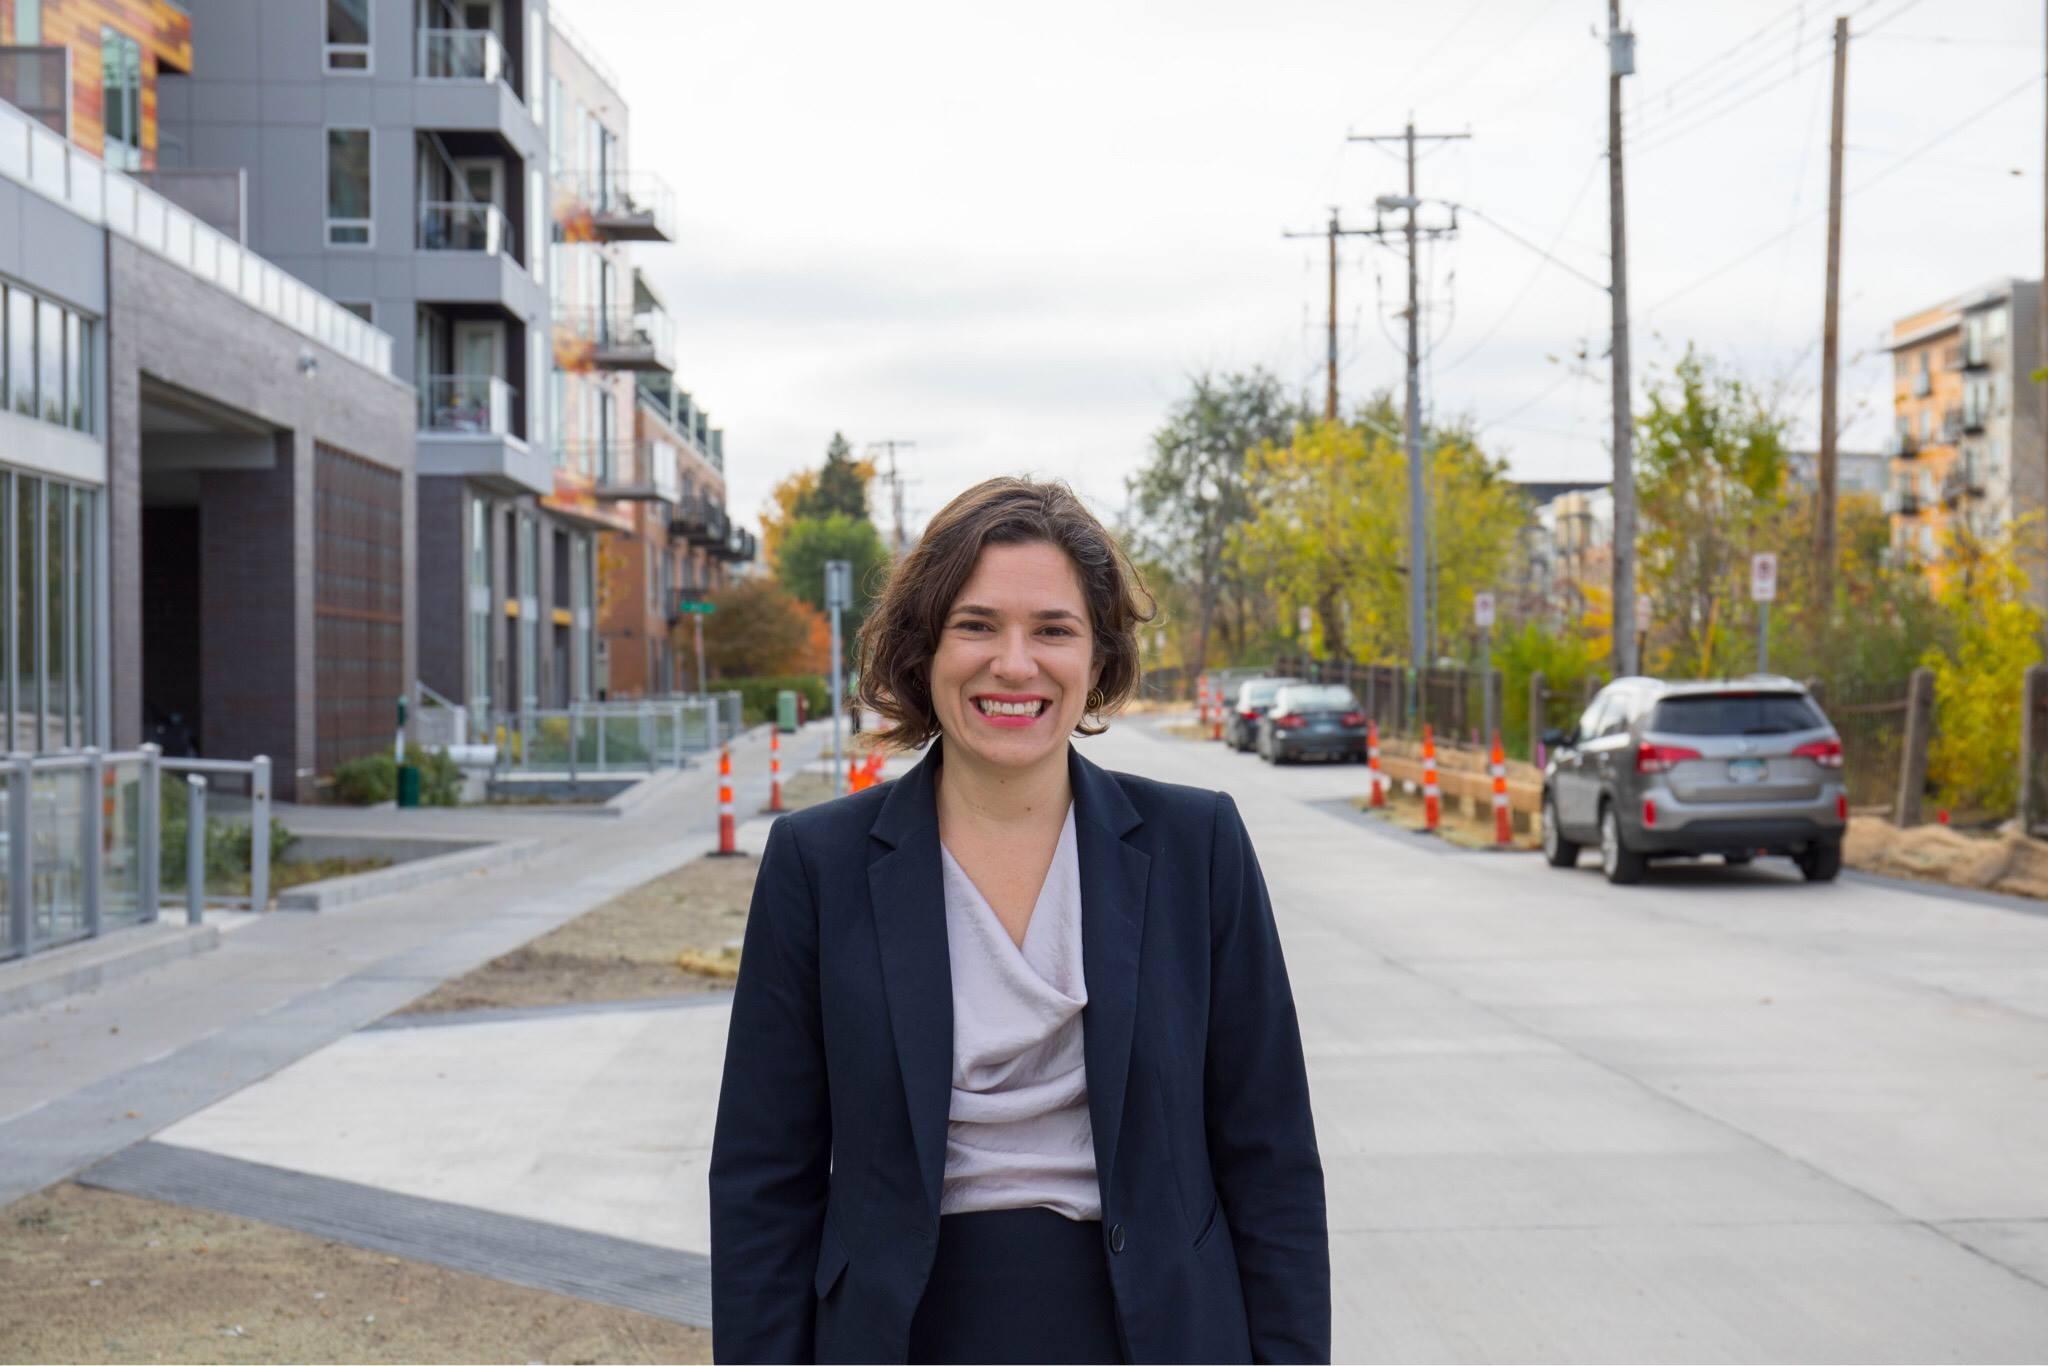 """Jamie is an effective, proven progressive leader. In his role for Keith Ellison, we've worked closely together to make Minneapolis a more equitable city for working families. I know he will be a great partner in the state legislature, and has what it takes to achieve policy results that improve people's lives."" — with  Lisa Bender - Minneapolis City Council Ward 10 ."